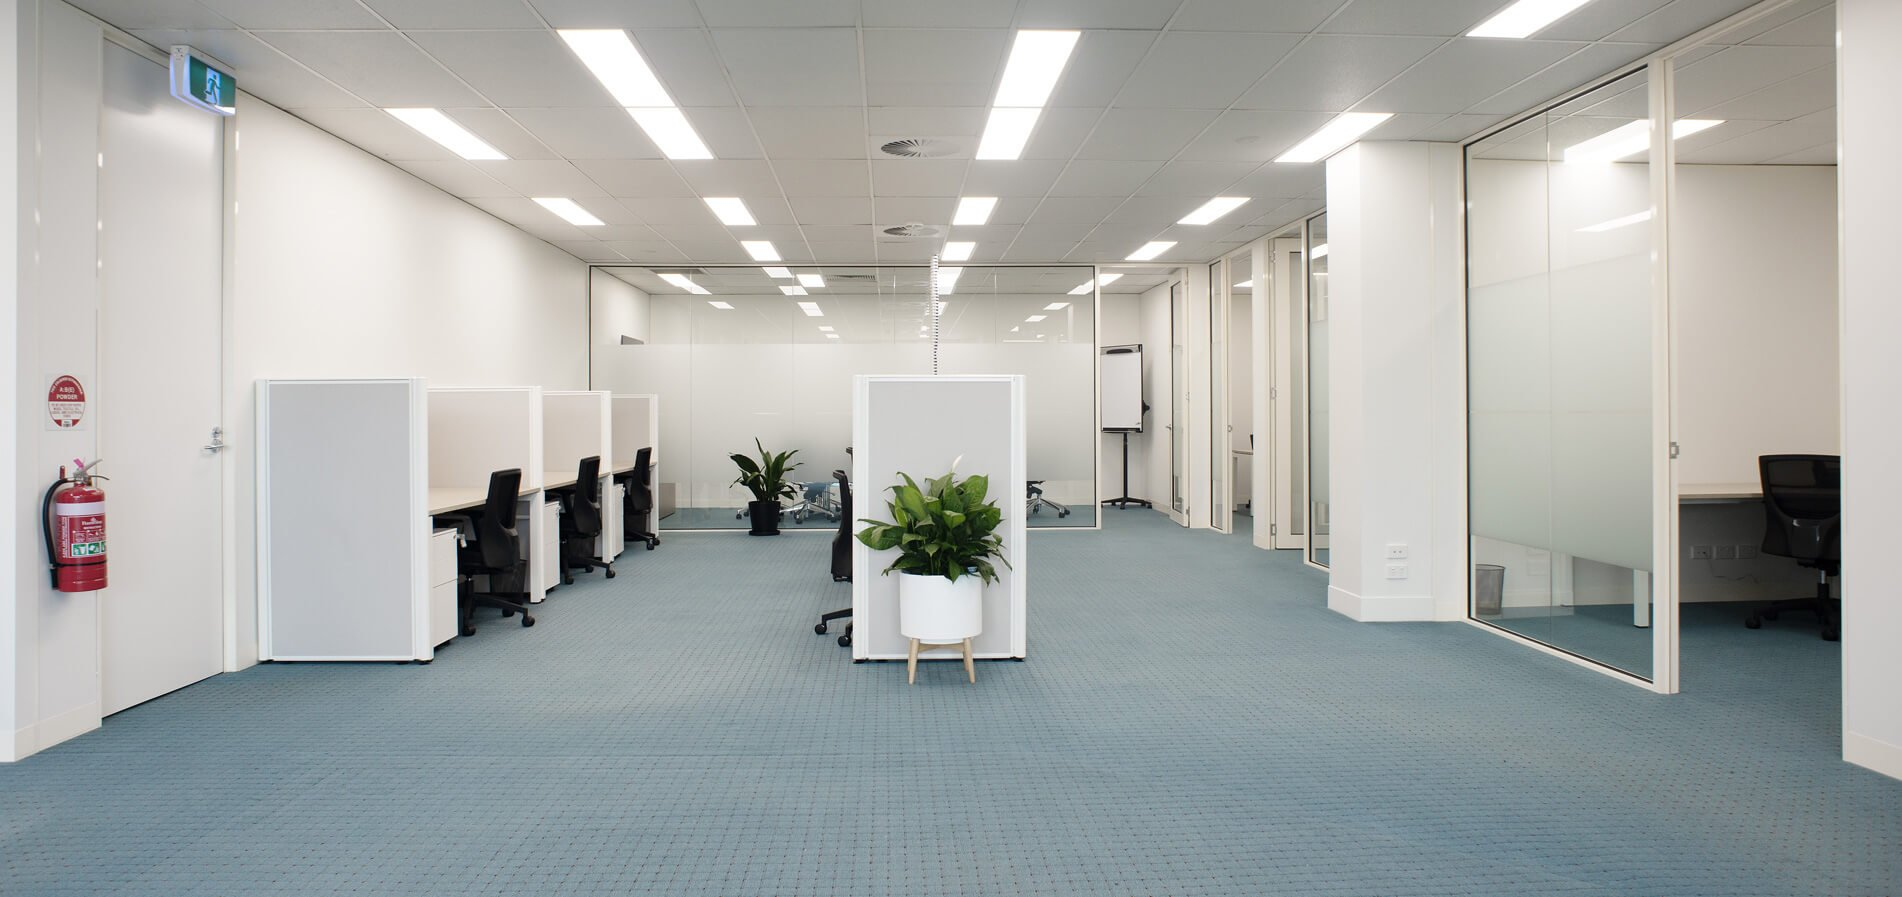 cheap shared office space melbourne